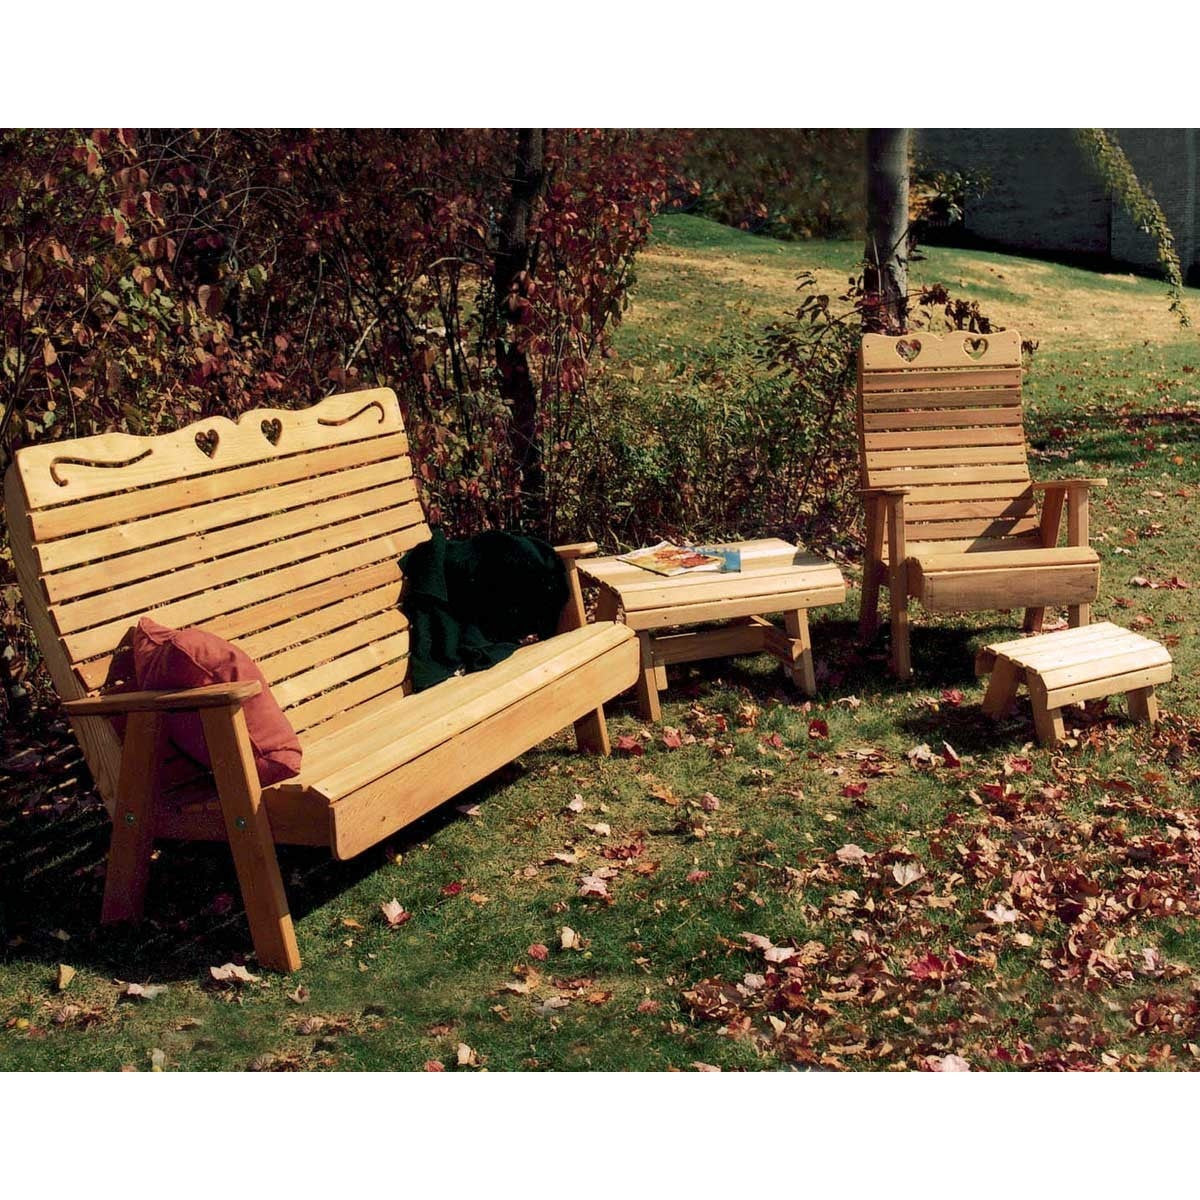 Creekvine Designs Cedar Royal Outdoor Patio Set - Swings and More